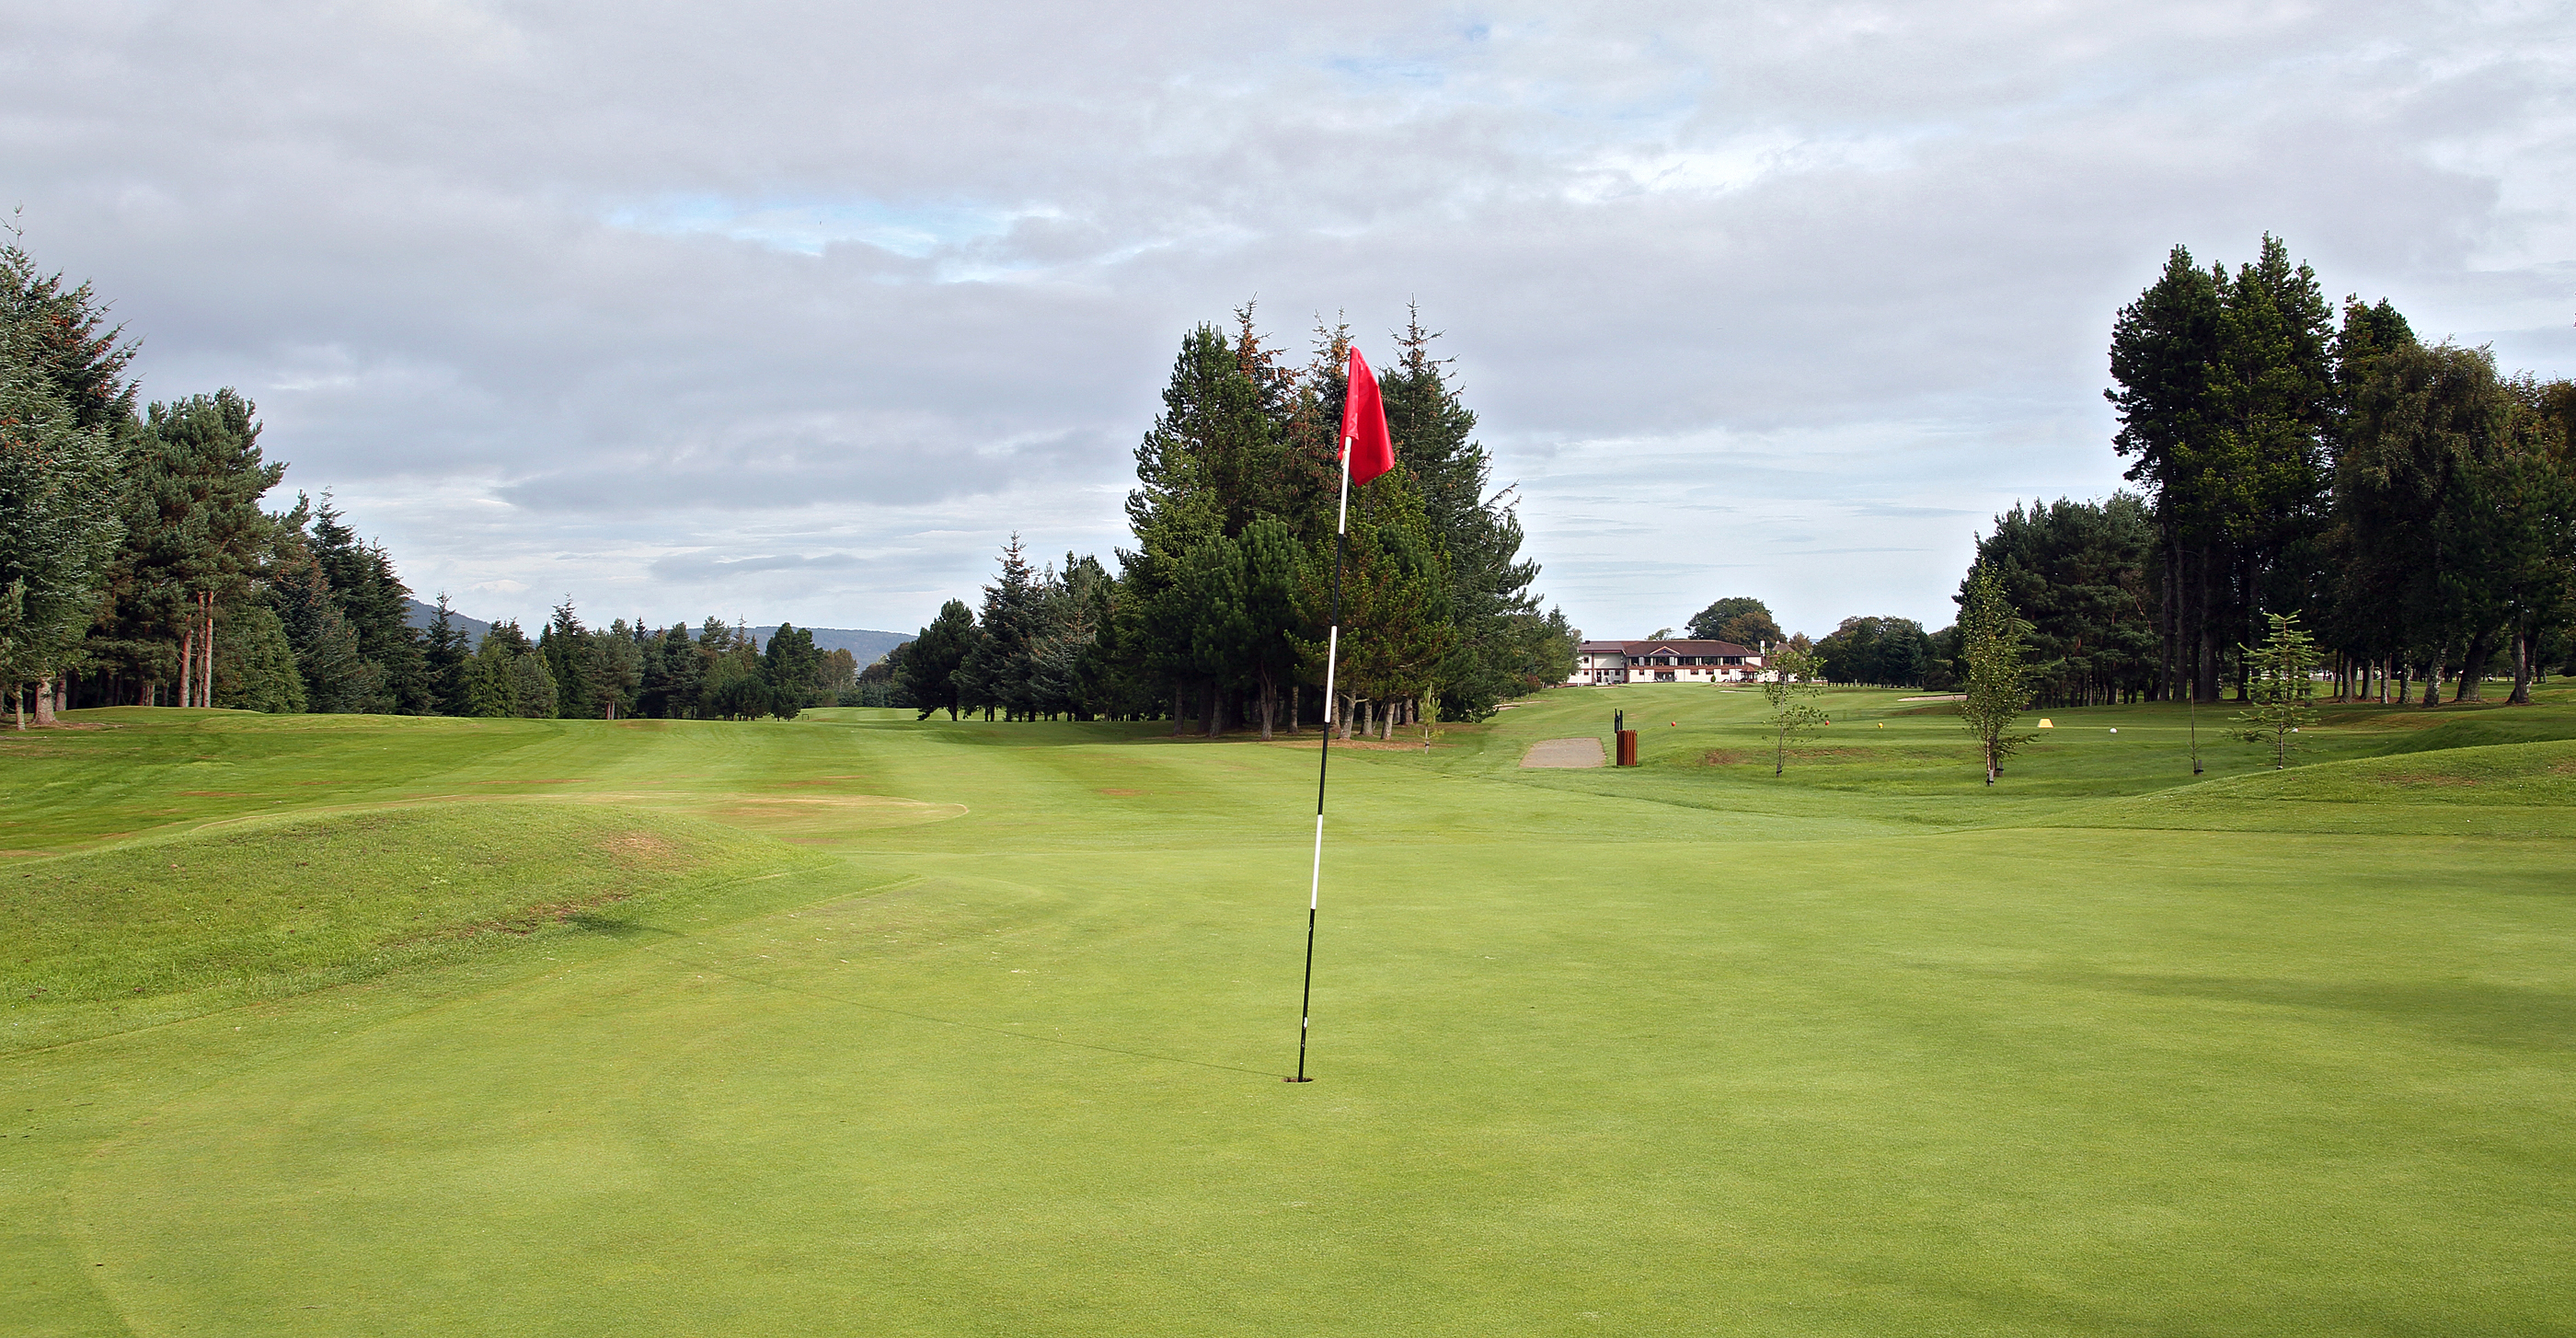 17th Green looking to 18th tee